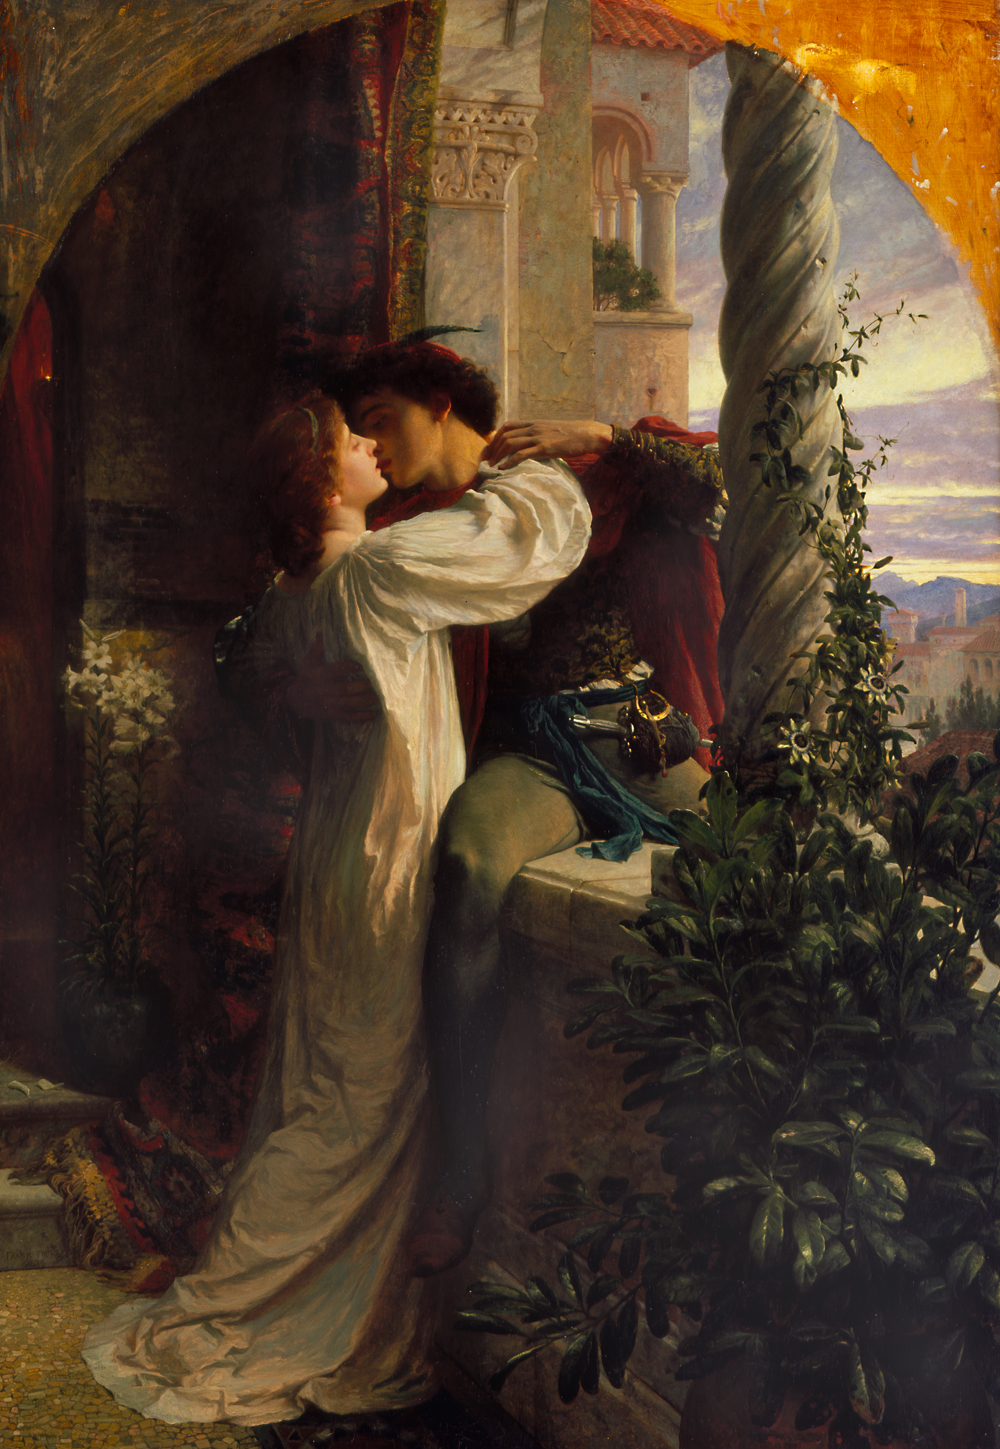 http://upload.wikimedia.org/wikipedia/commons/a/a3/DickseeRomeoandJuliet.jpg